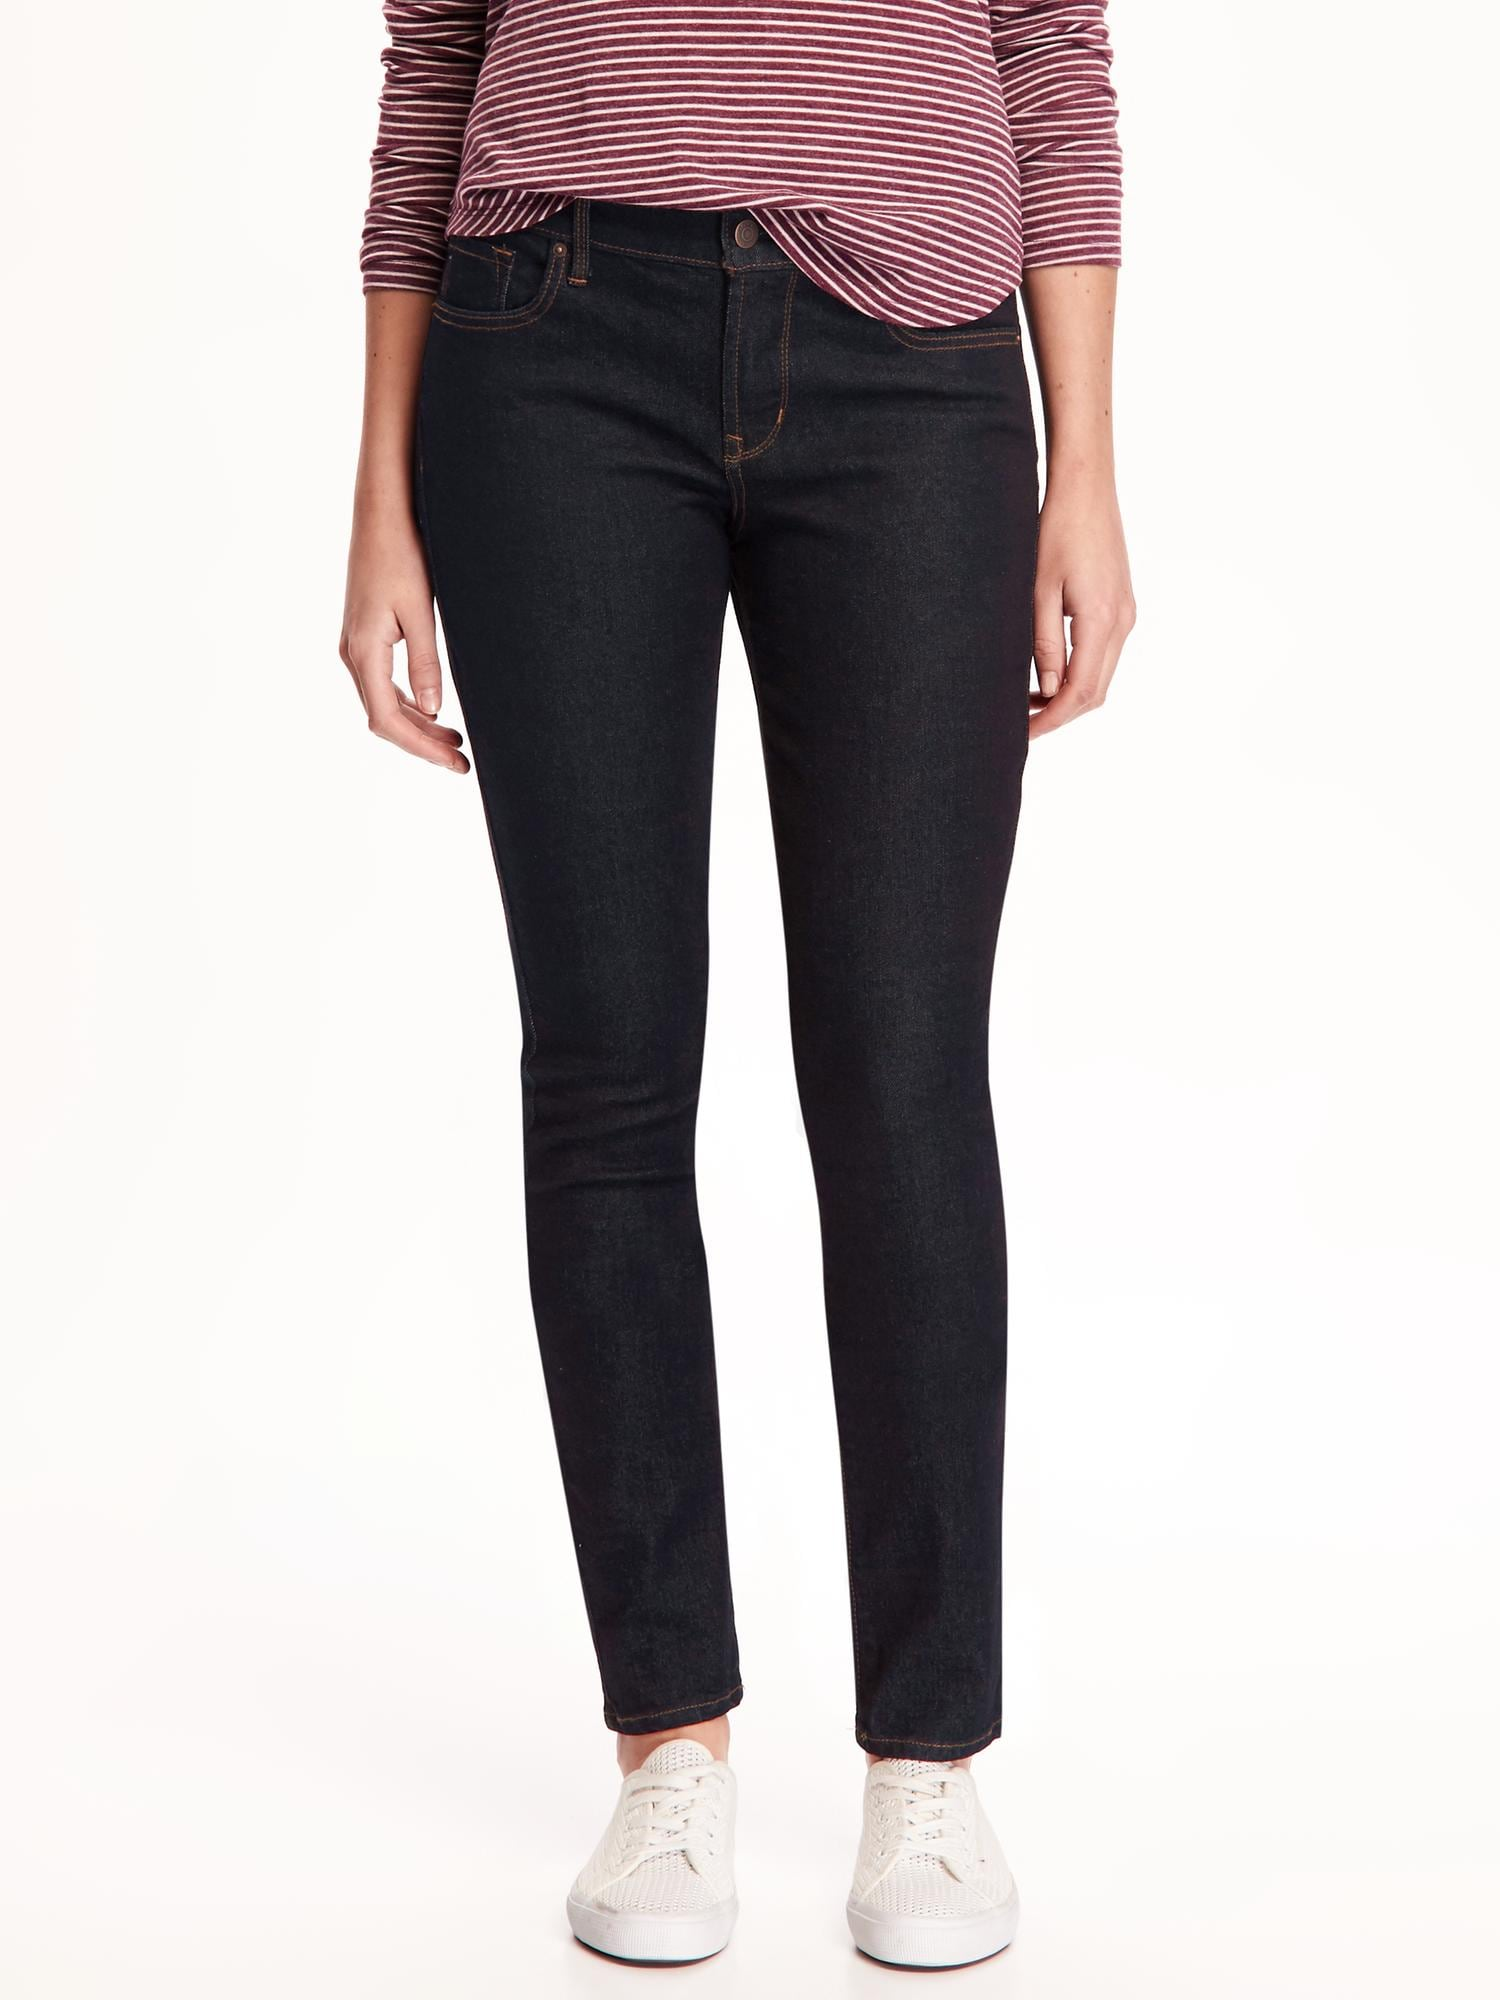 Old Navy Mid-Rise Original Skinny Jeans for Women